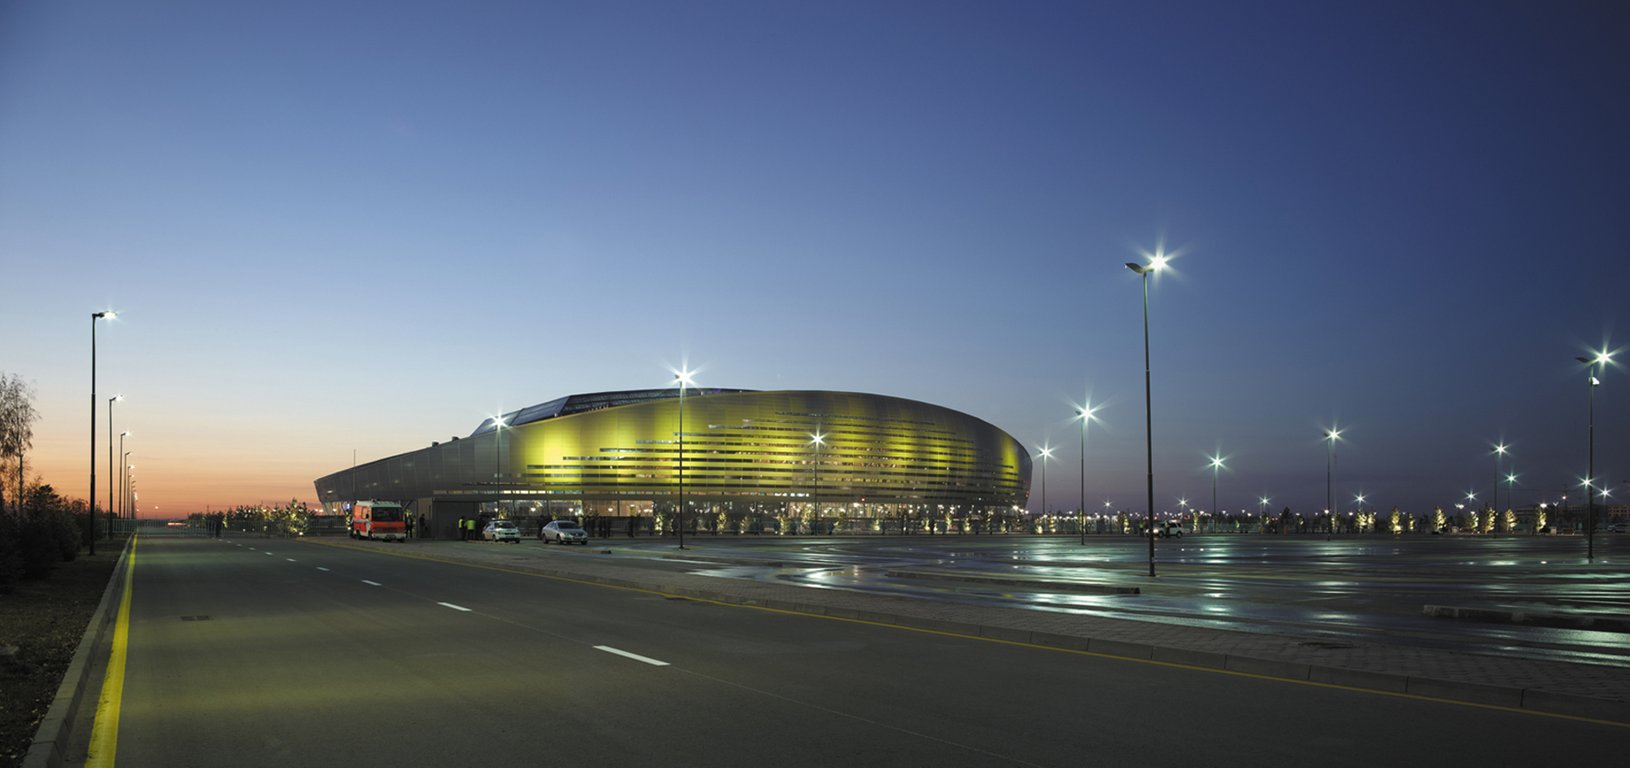 Astana Arena by night - large